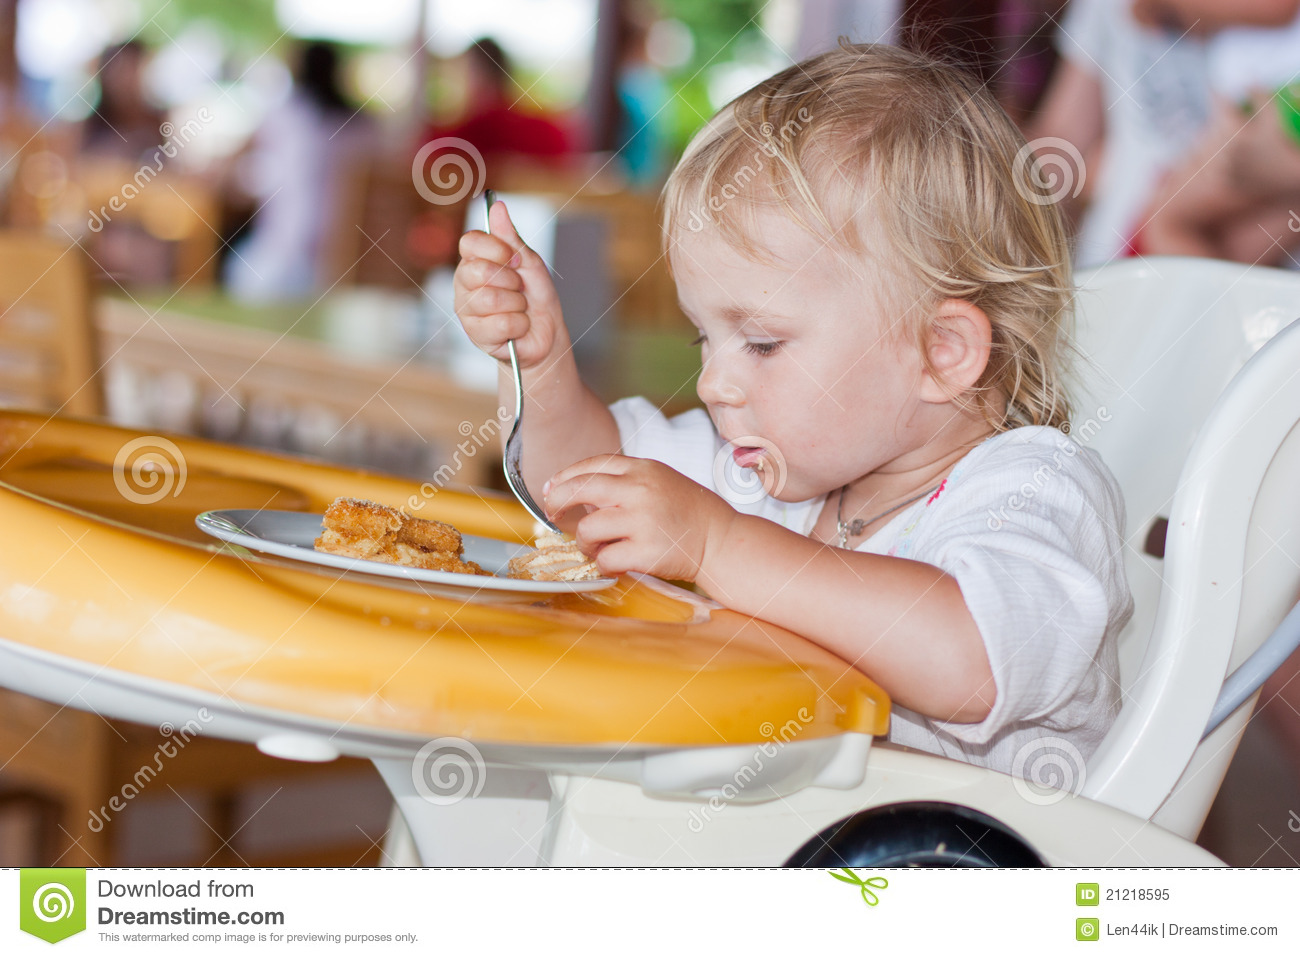 baby eating chair tolix cushion adorable cake in a royalty free stock